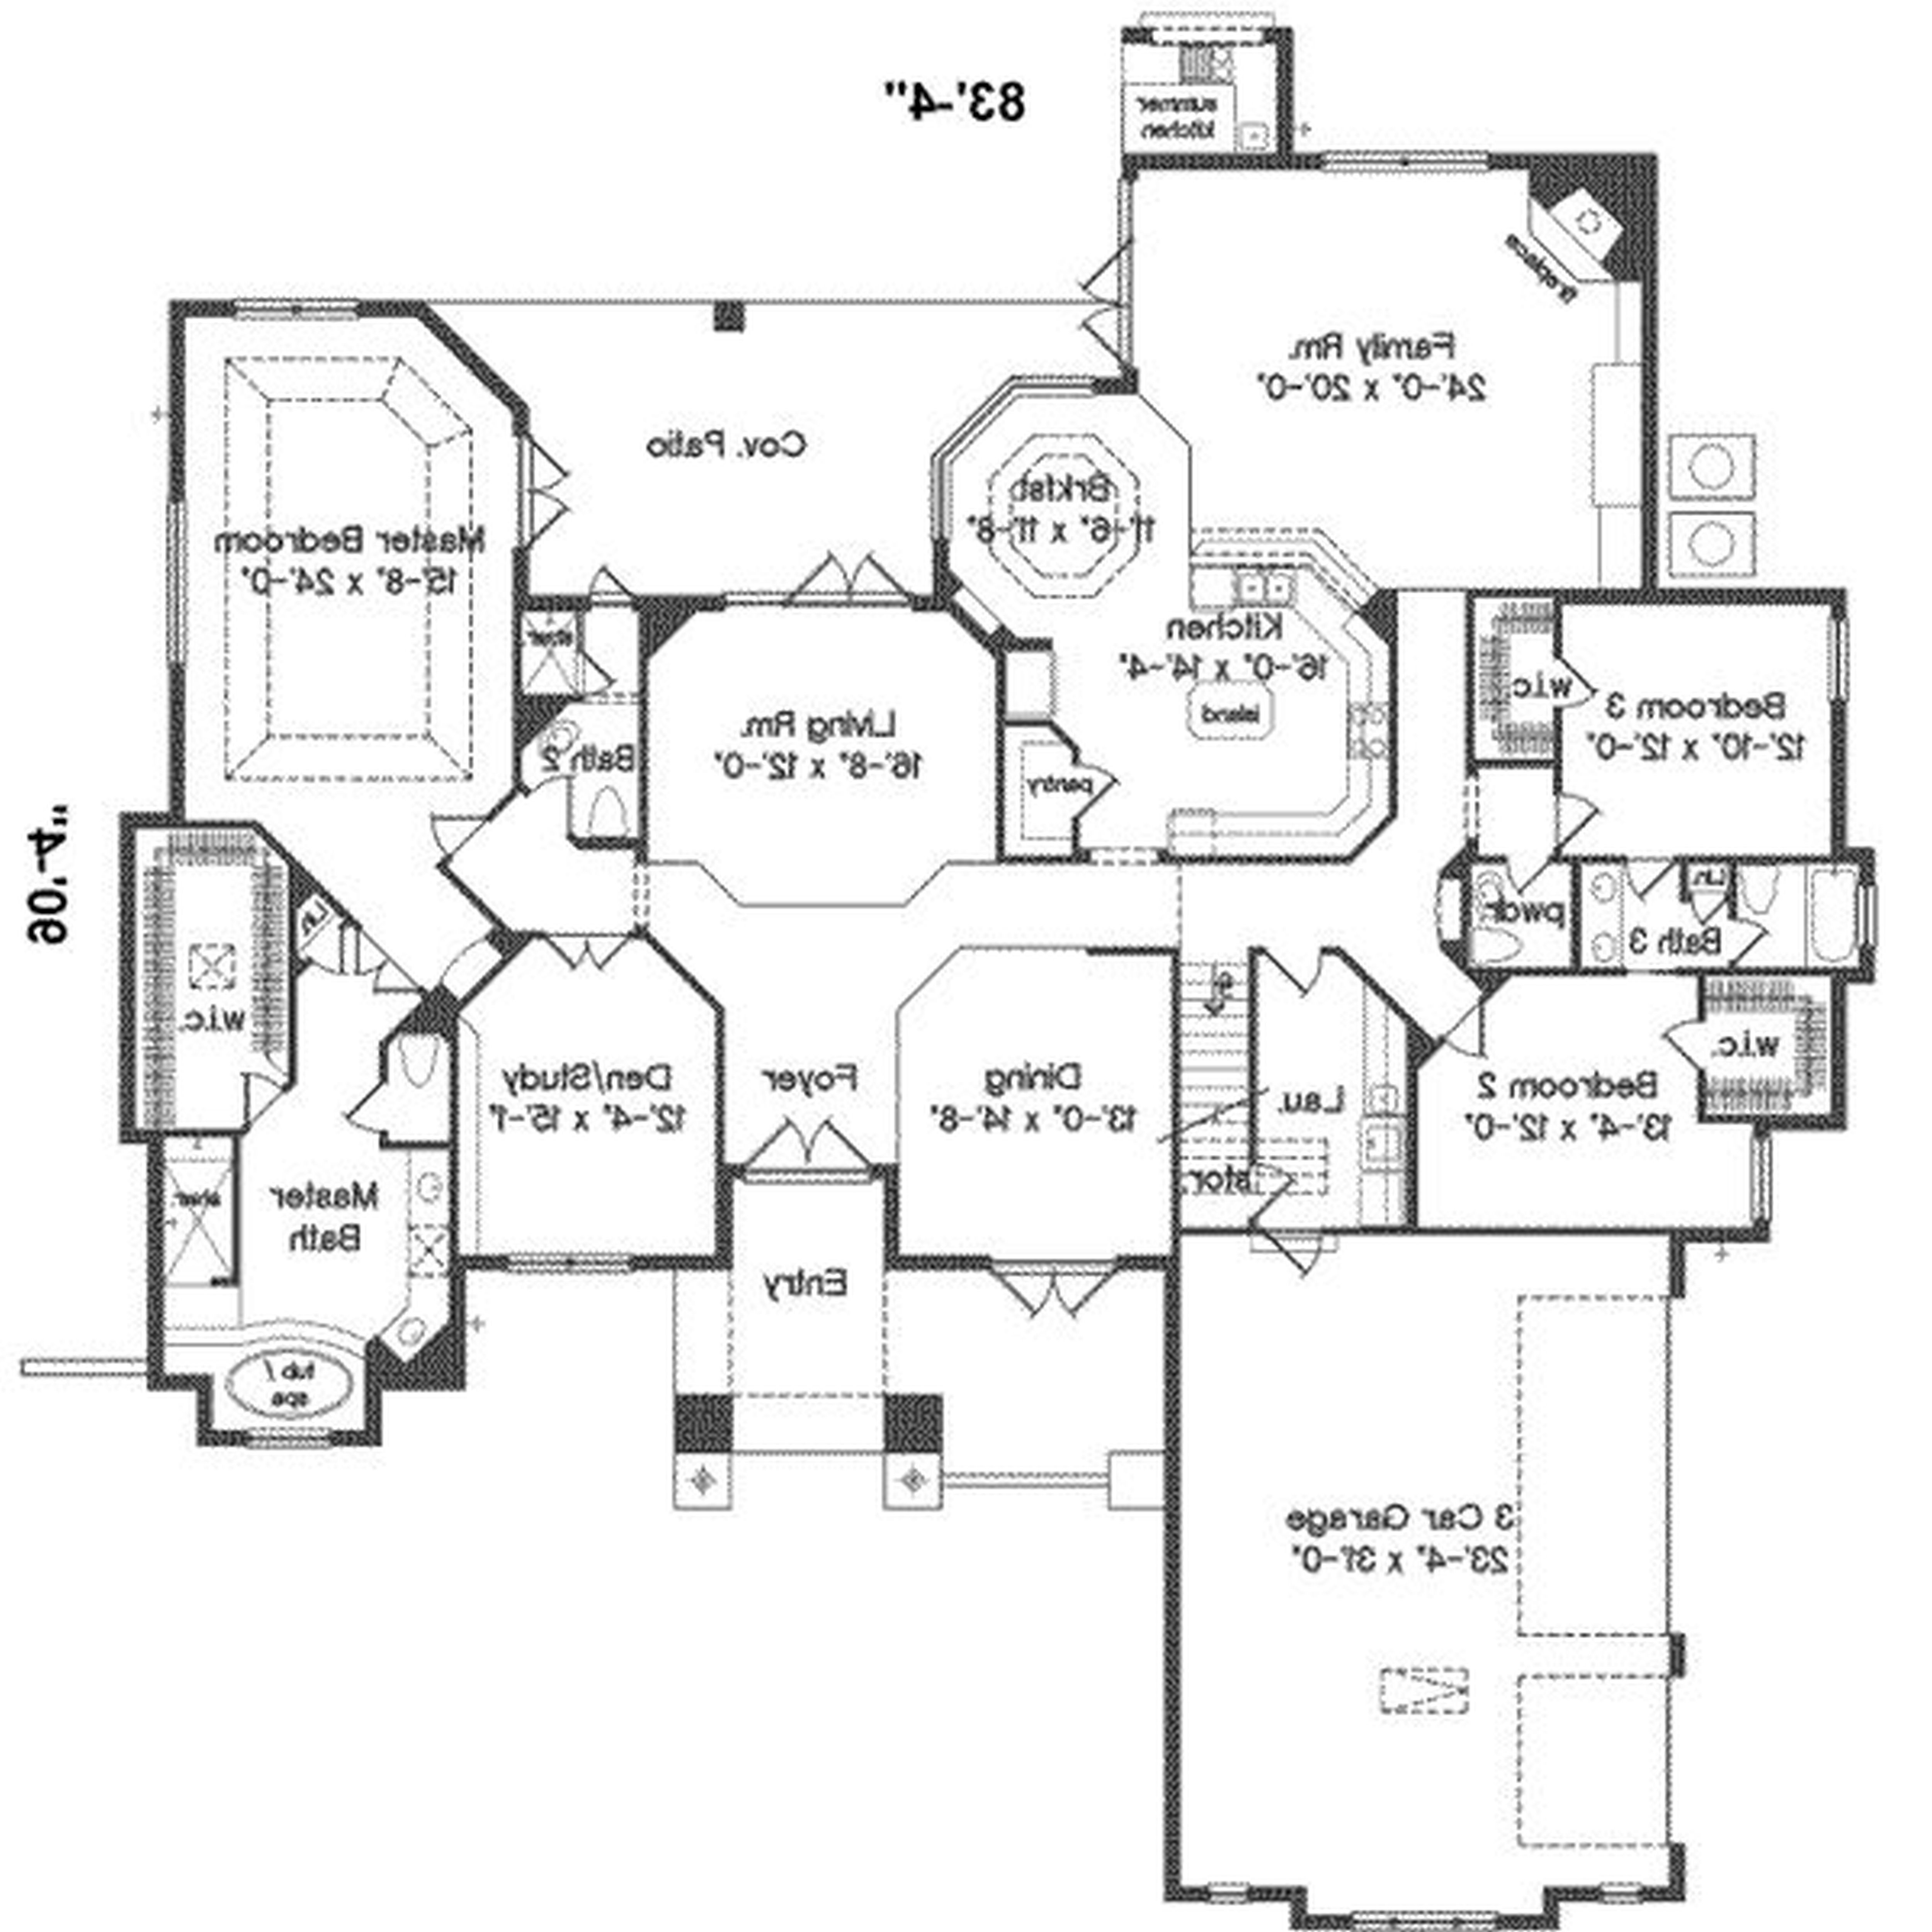 Simple online floor plan tool review home co for Online floor plan design tool free